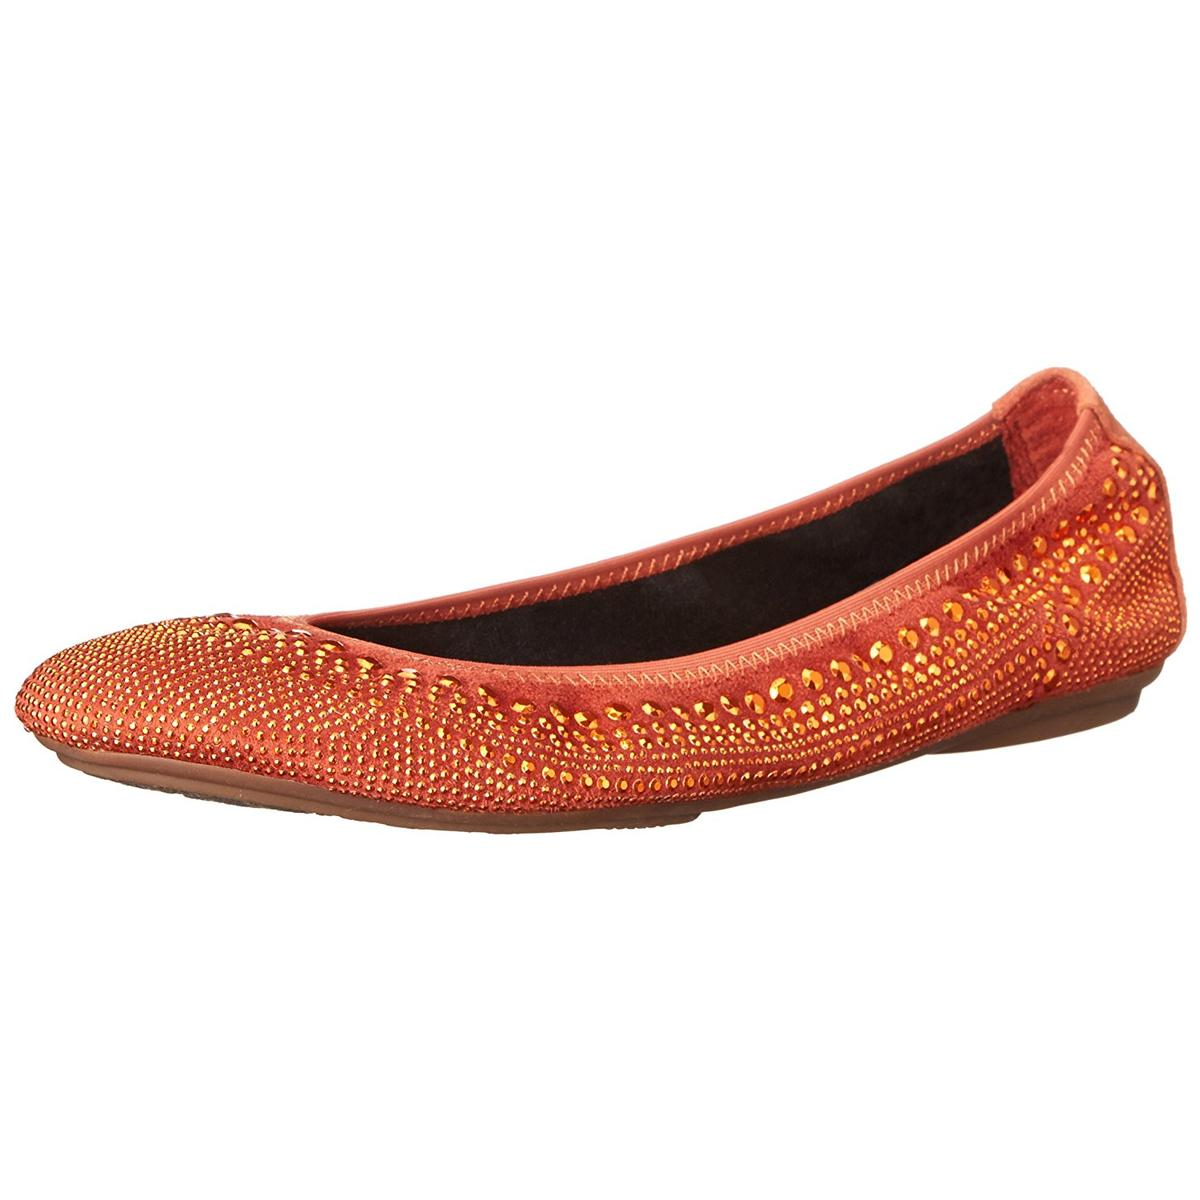 Hush Puppies Caste Ballet Womens Dark Orange Flats by Hush Puppies